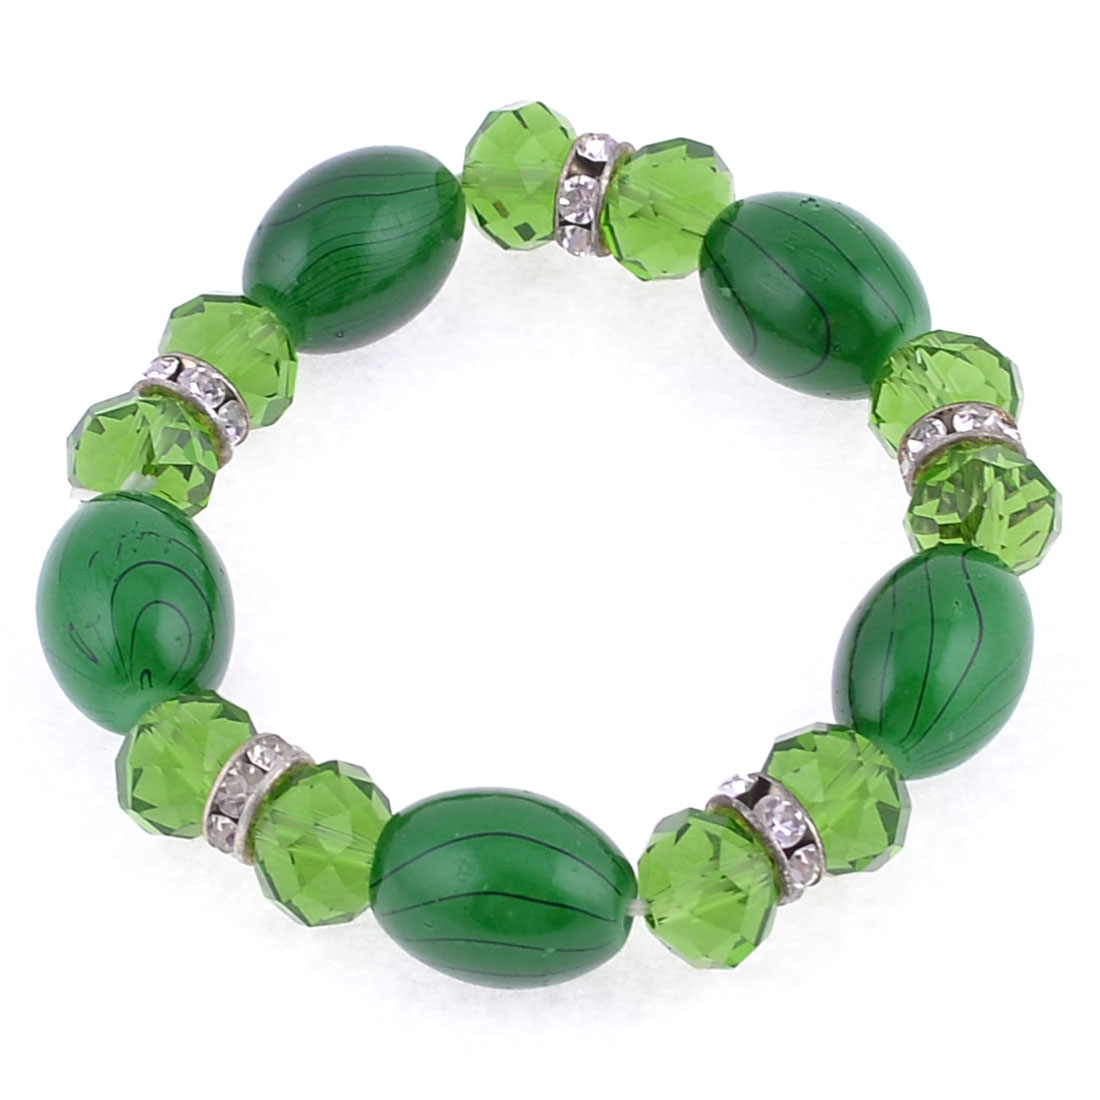 Green Plastic Crystal Small Bling Bling Rhinestones Bracelet Bangle Decor